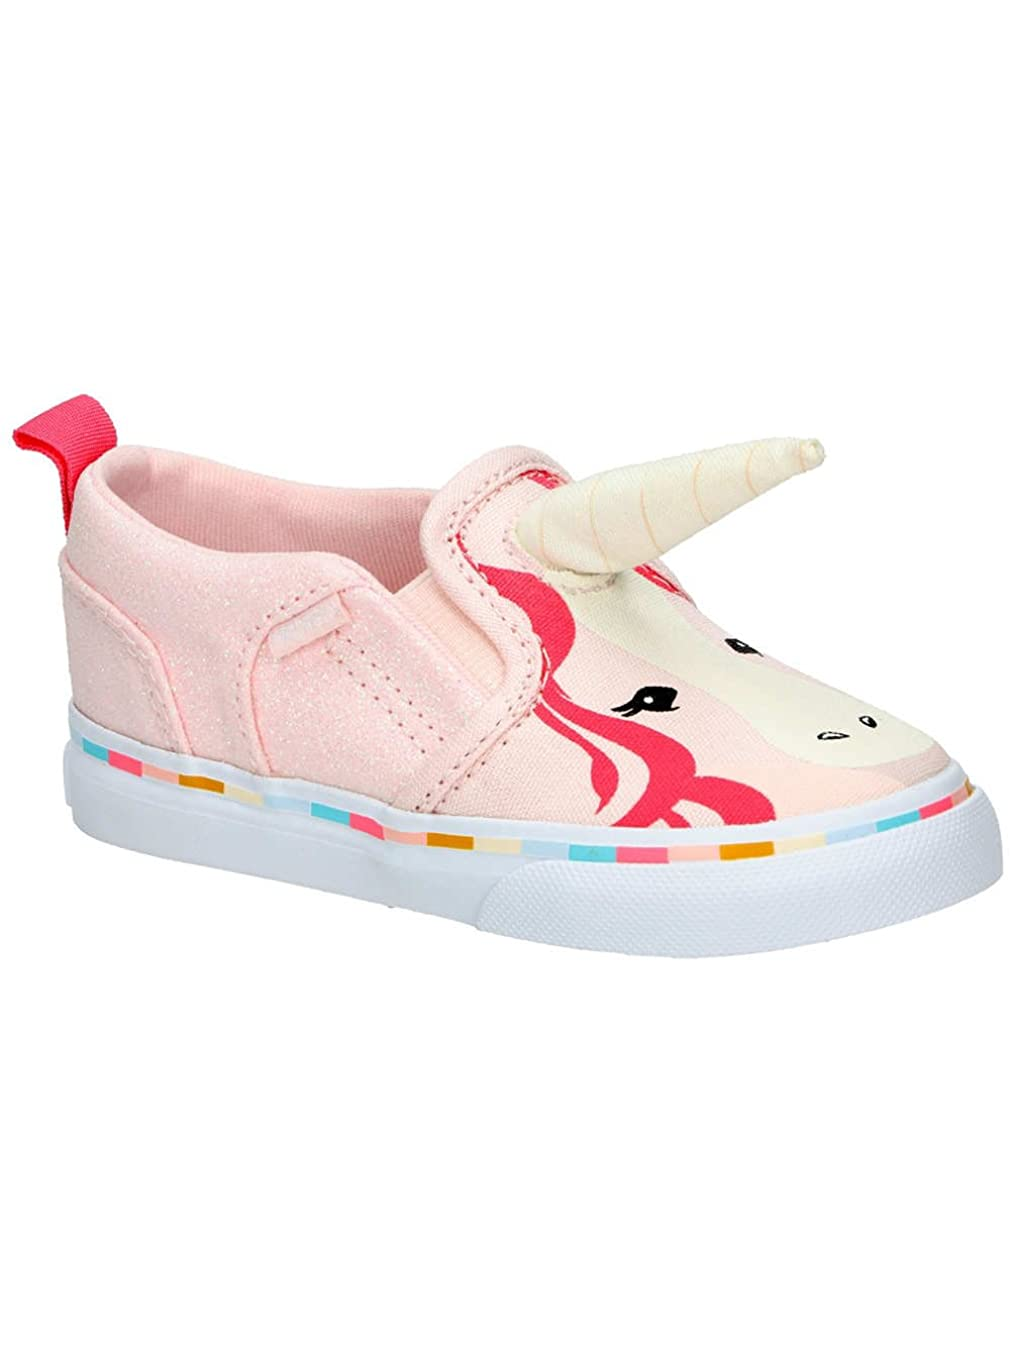 Vans Toddler Girls Asher V Pink Unicorn with Horn Sneakers